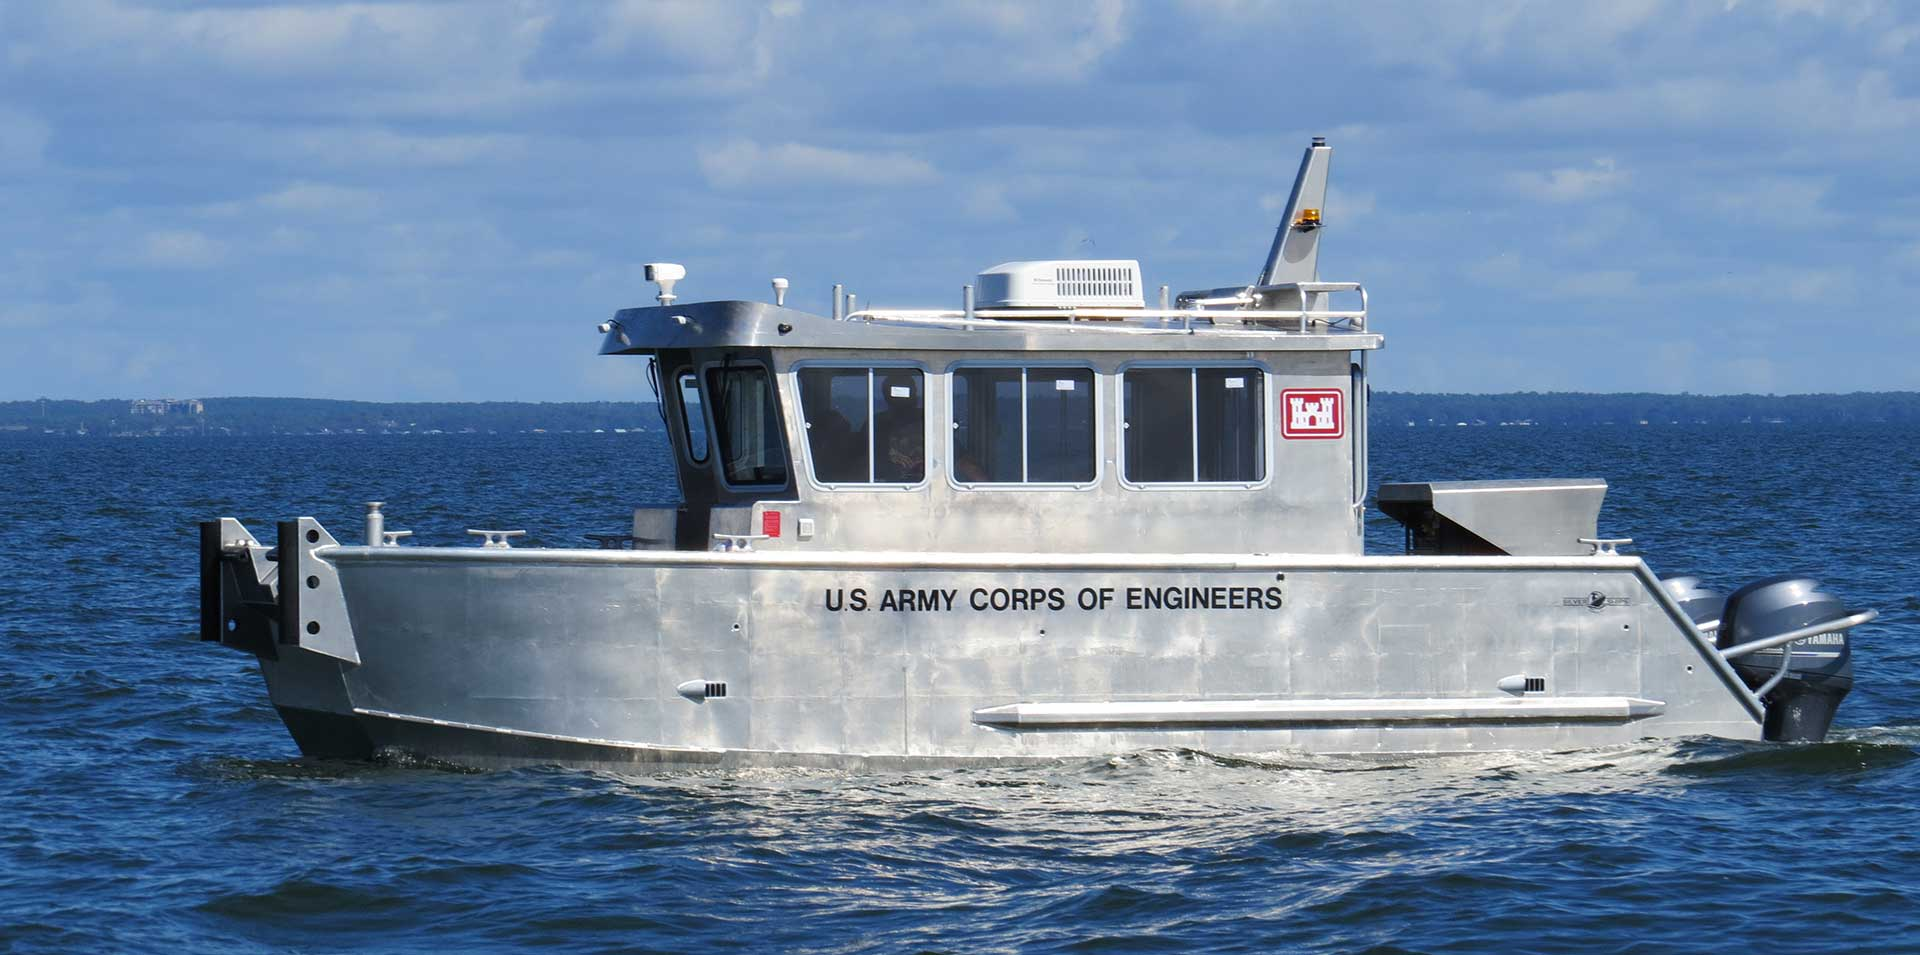 Silver Ships U.S. Army Corps of Engineers survey boat